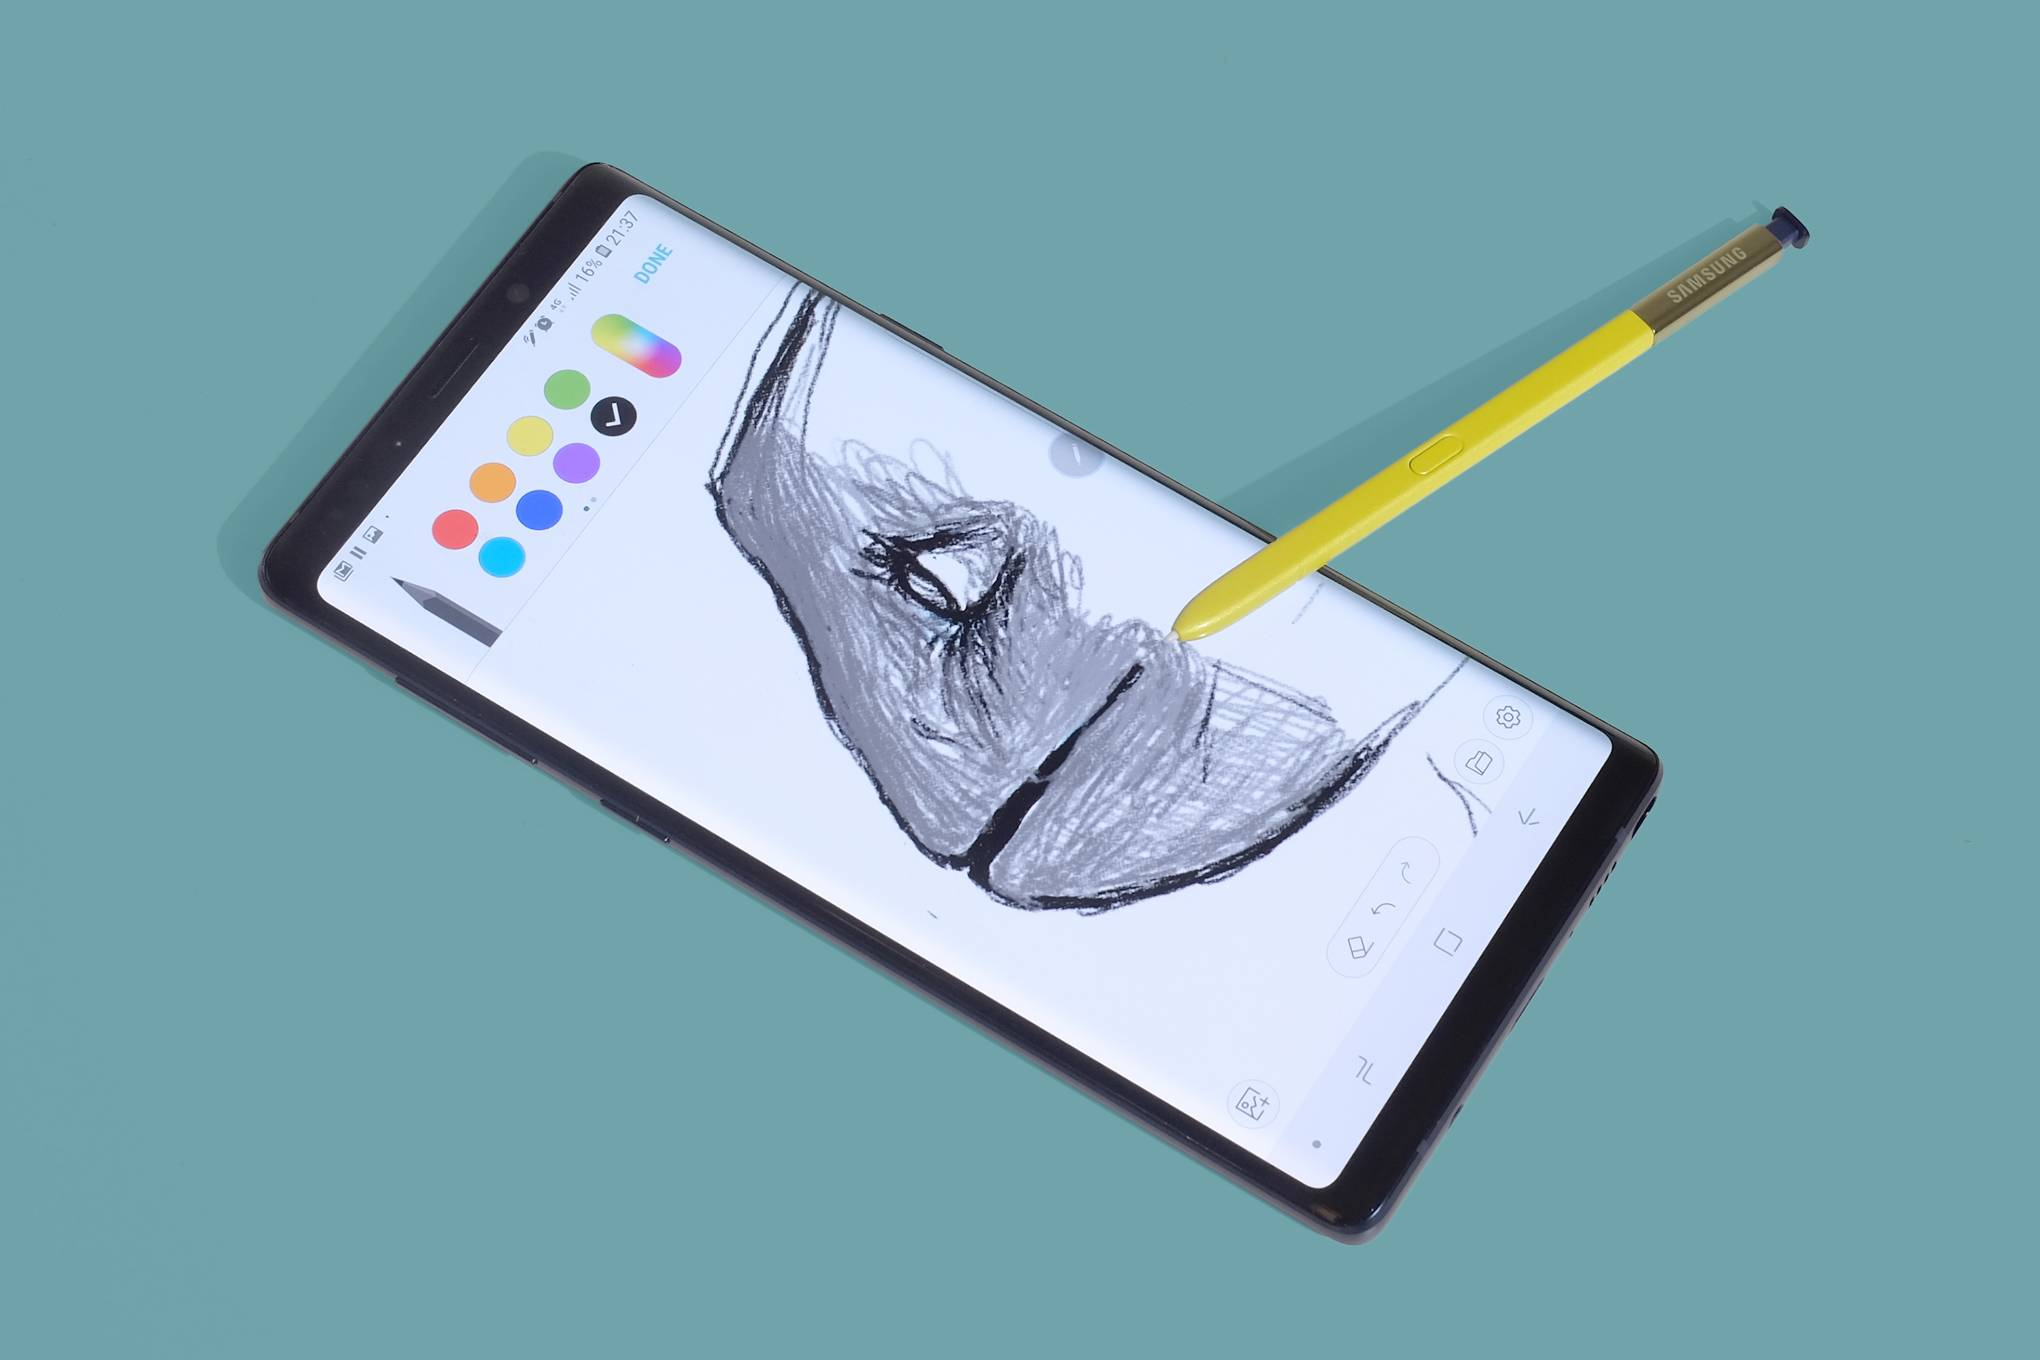 Samsung Galaxy Note 9 review: a great phone blighted by